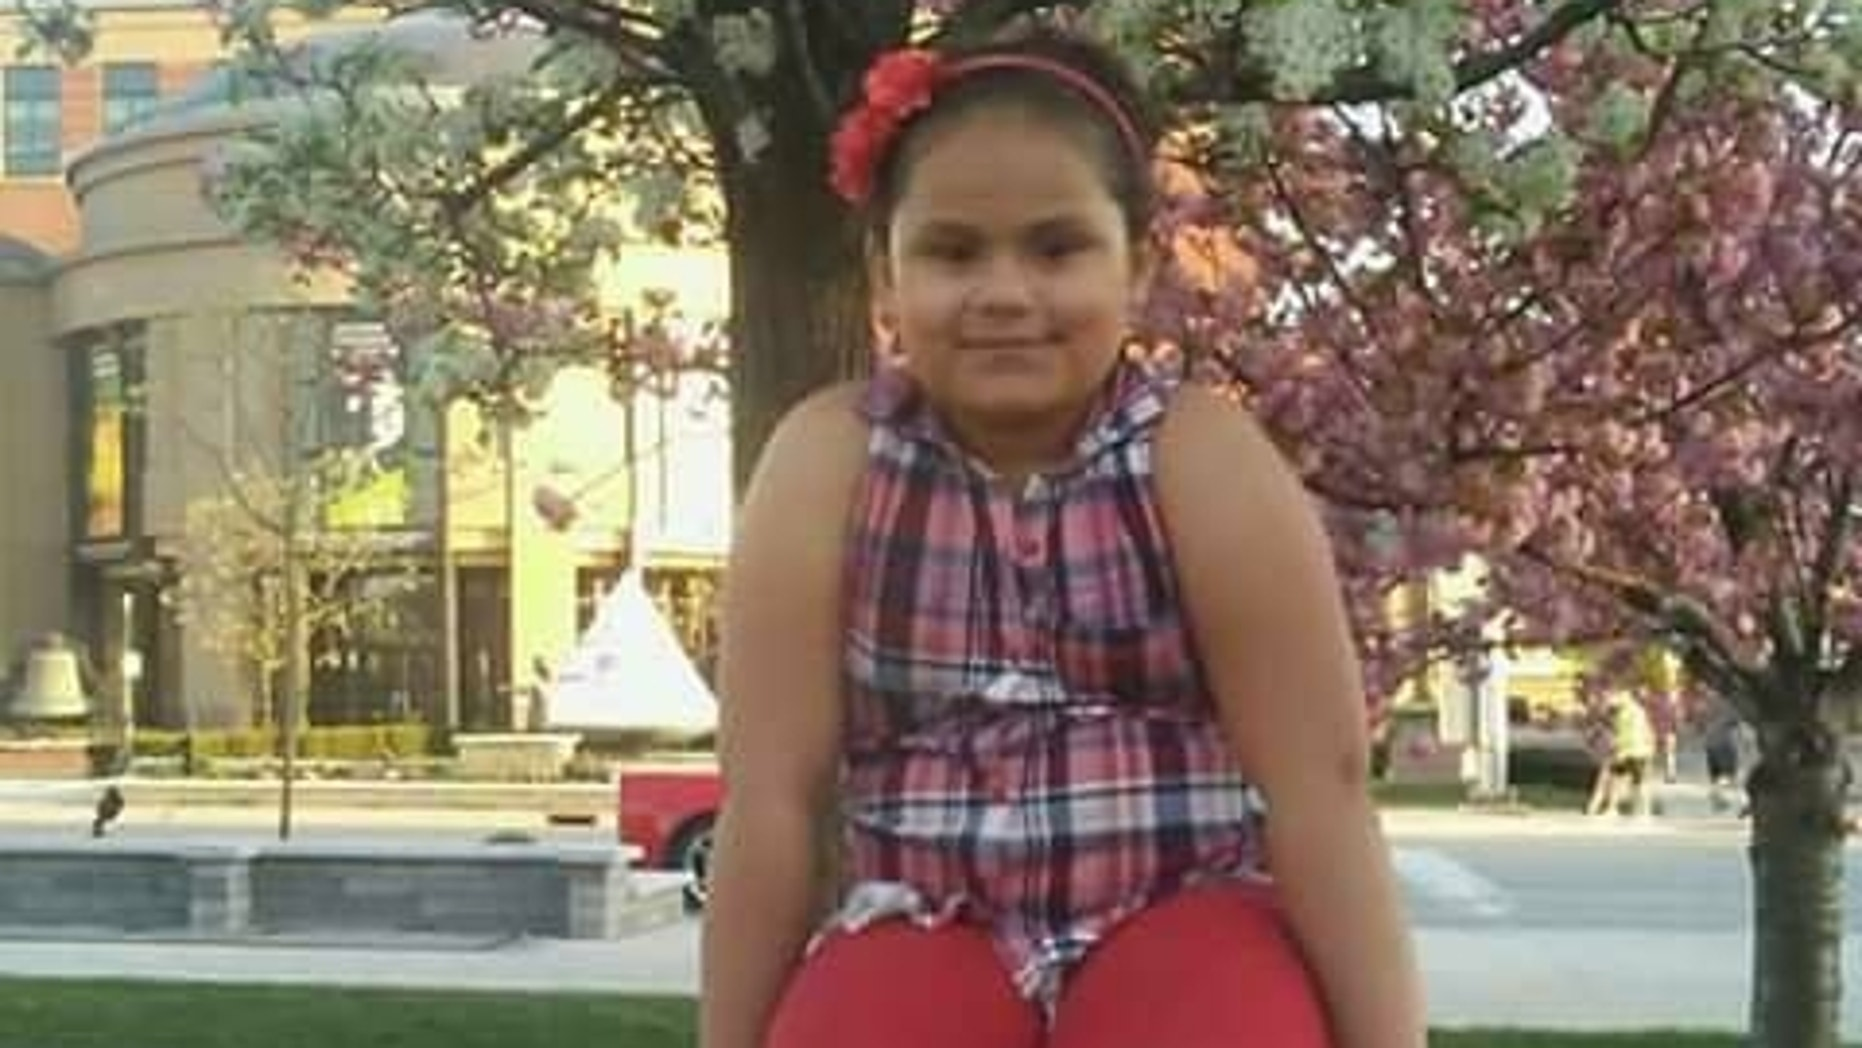 Nevaeh Alston, 8, was delivering food to the homeless Tuesday night when she was struck by a car.